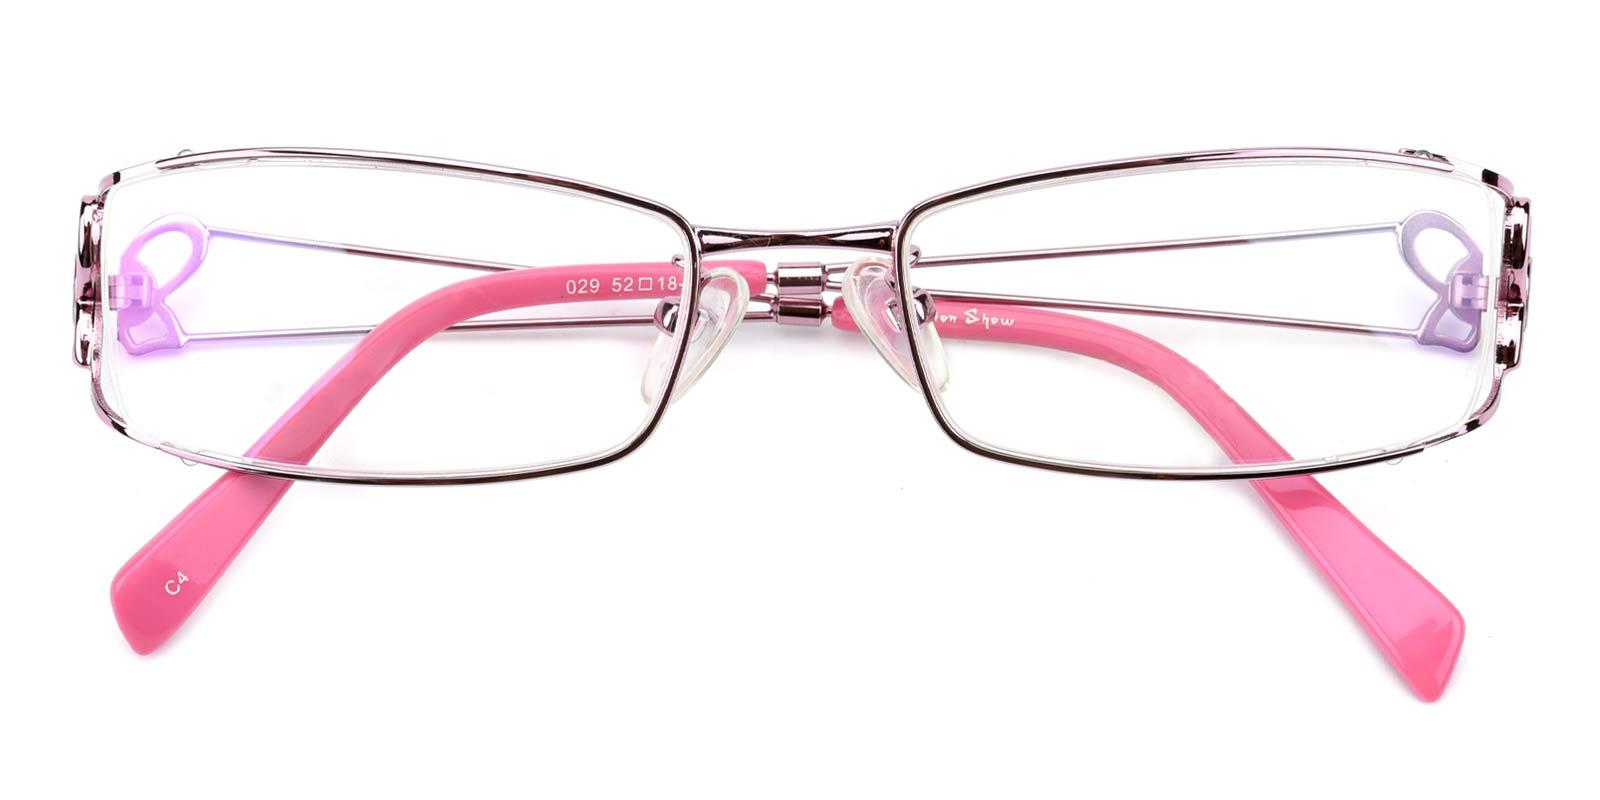 Kate-Pink-Rectangle-Metal-Eyeglasses-detail